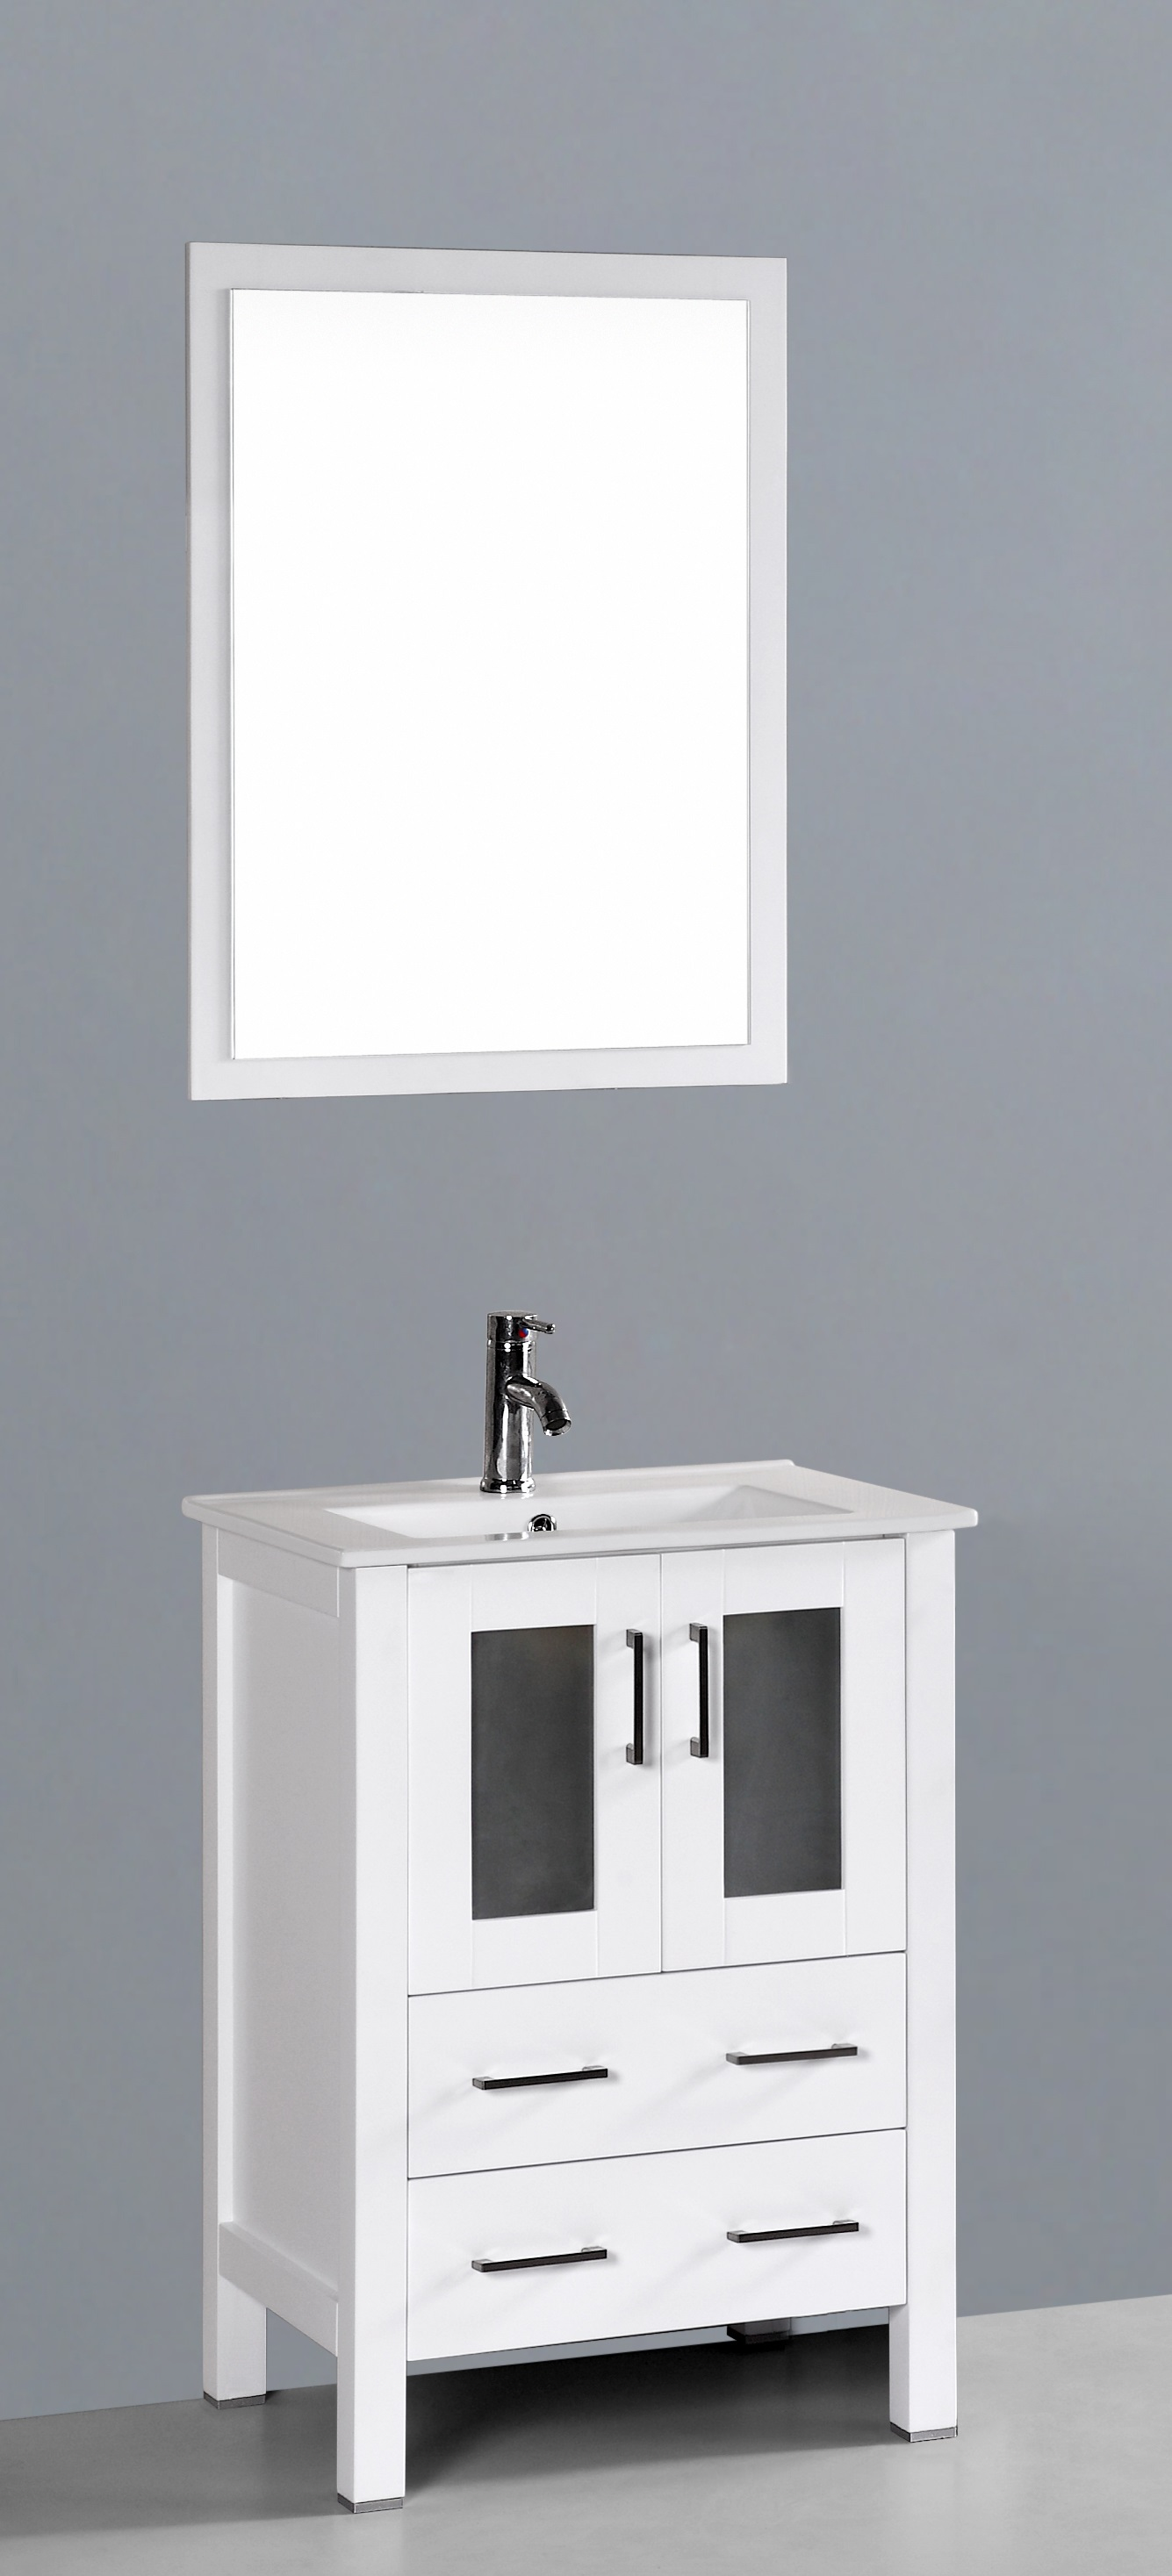 small ideas vanities vanity lowes depot design wondrous contemporary double inch of bathroom for sink home tops top furniture